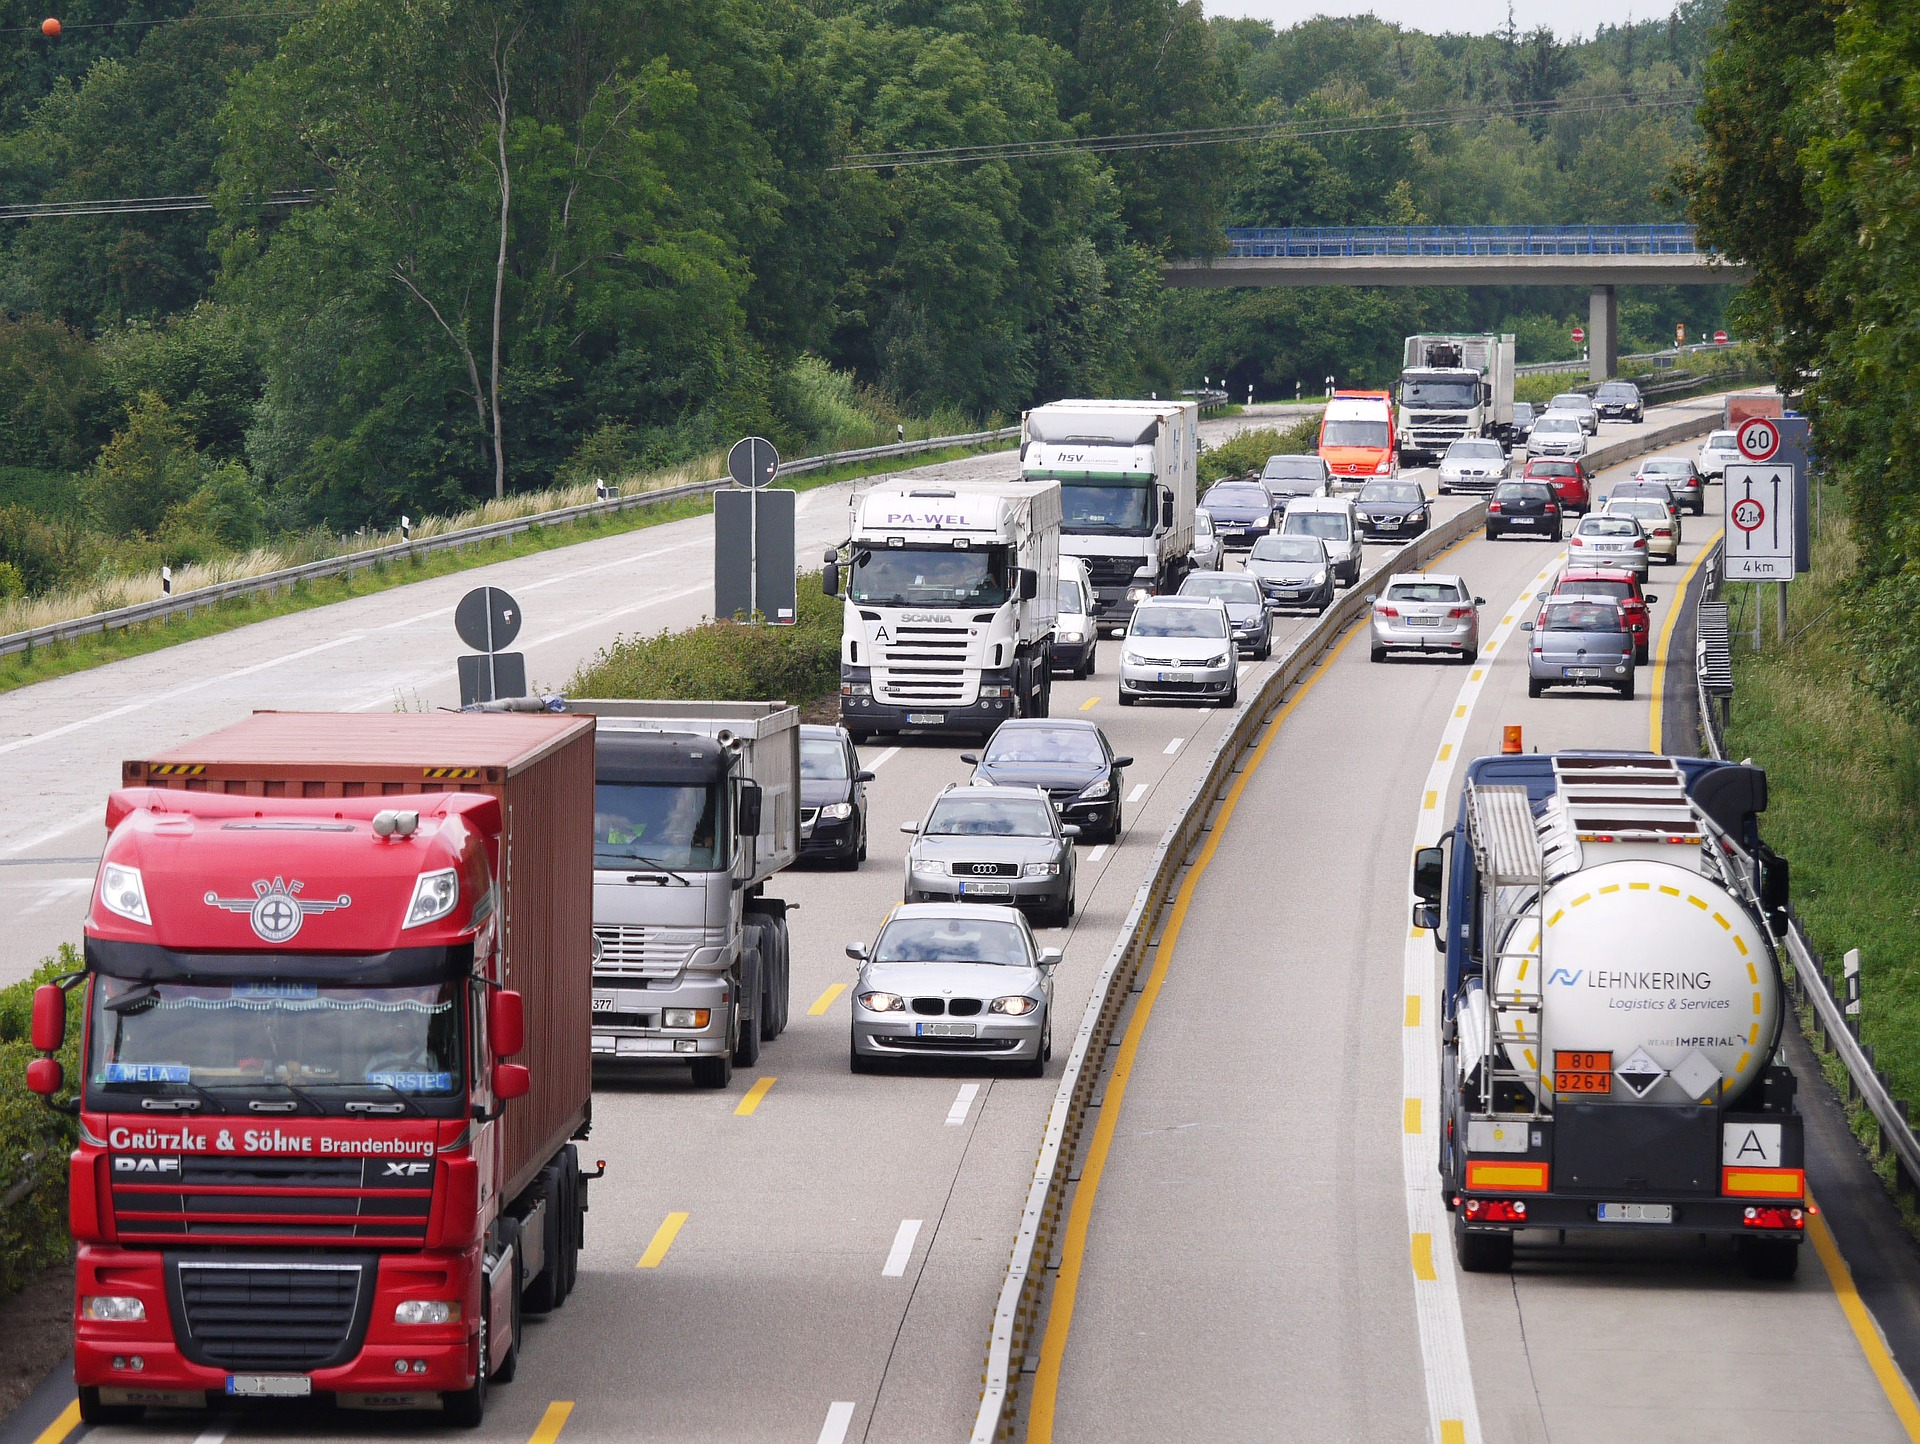 Lorries on motorway, are you ready for smart tachographs